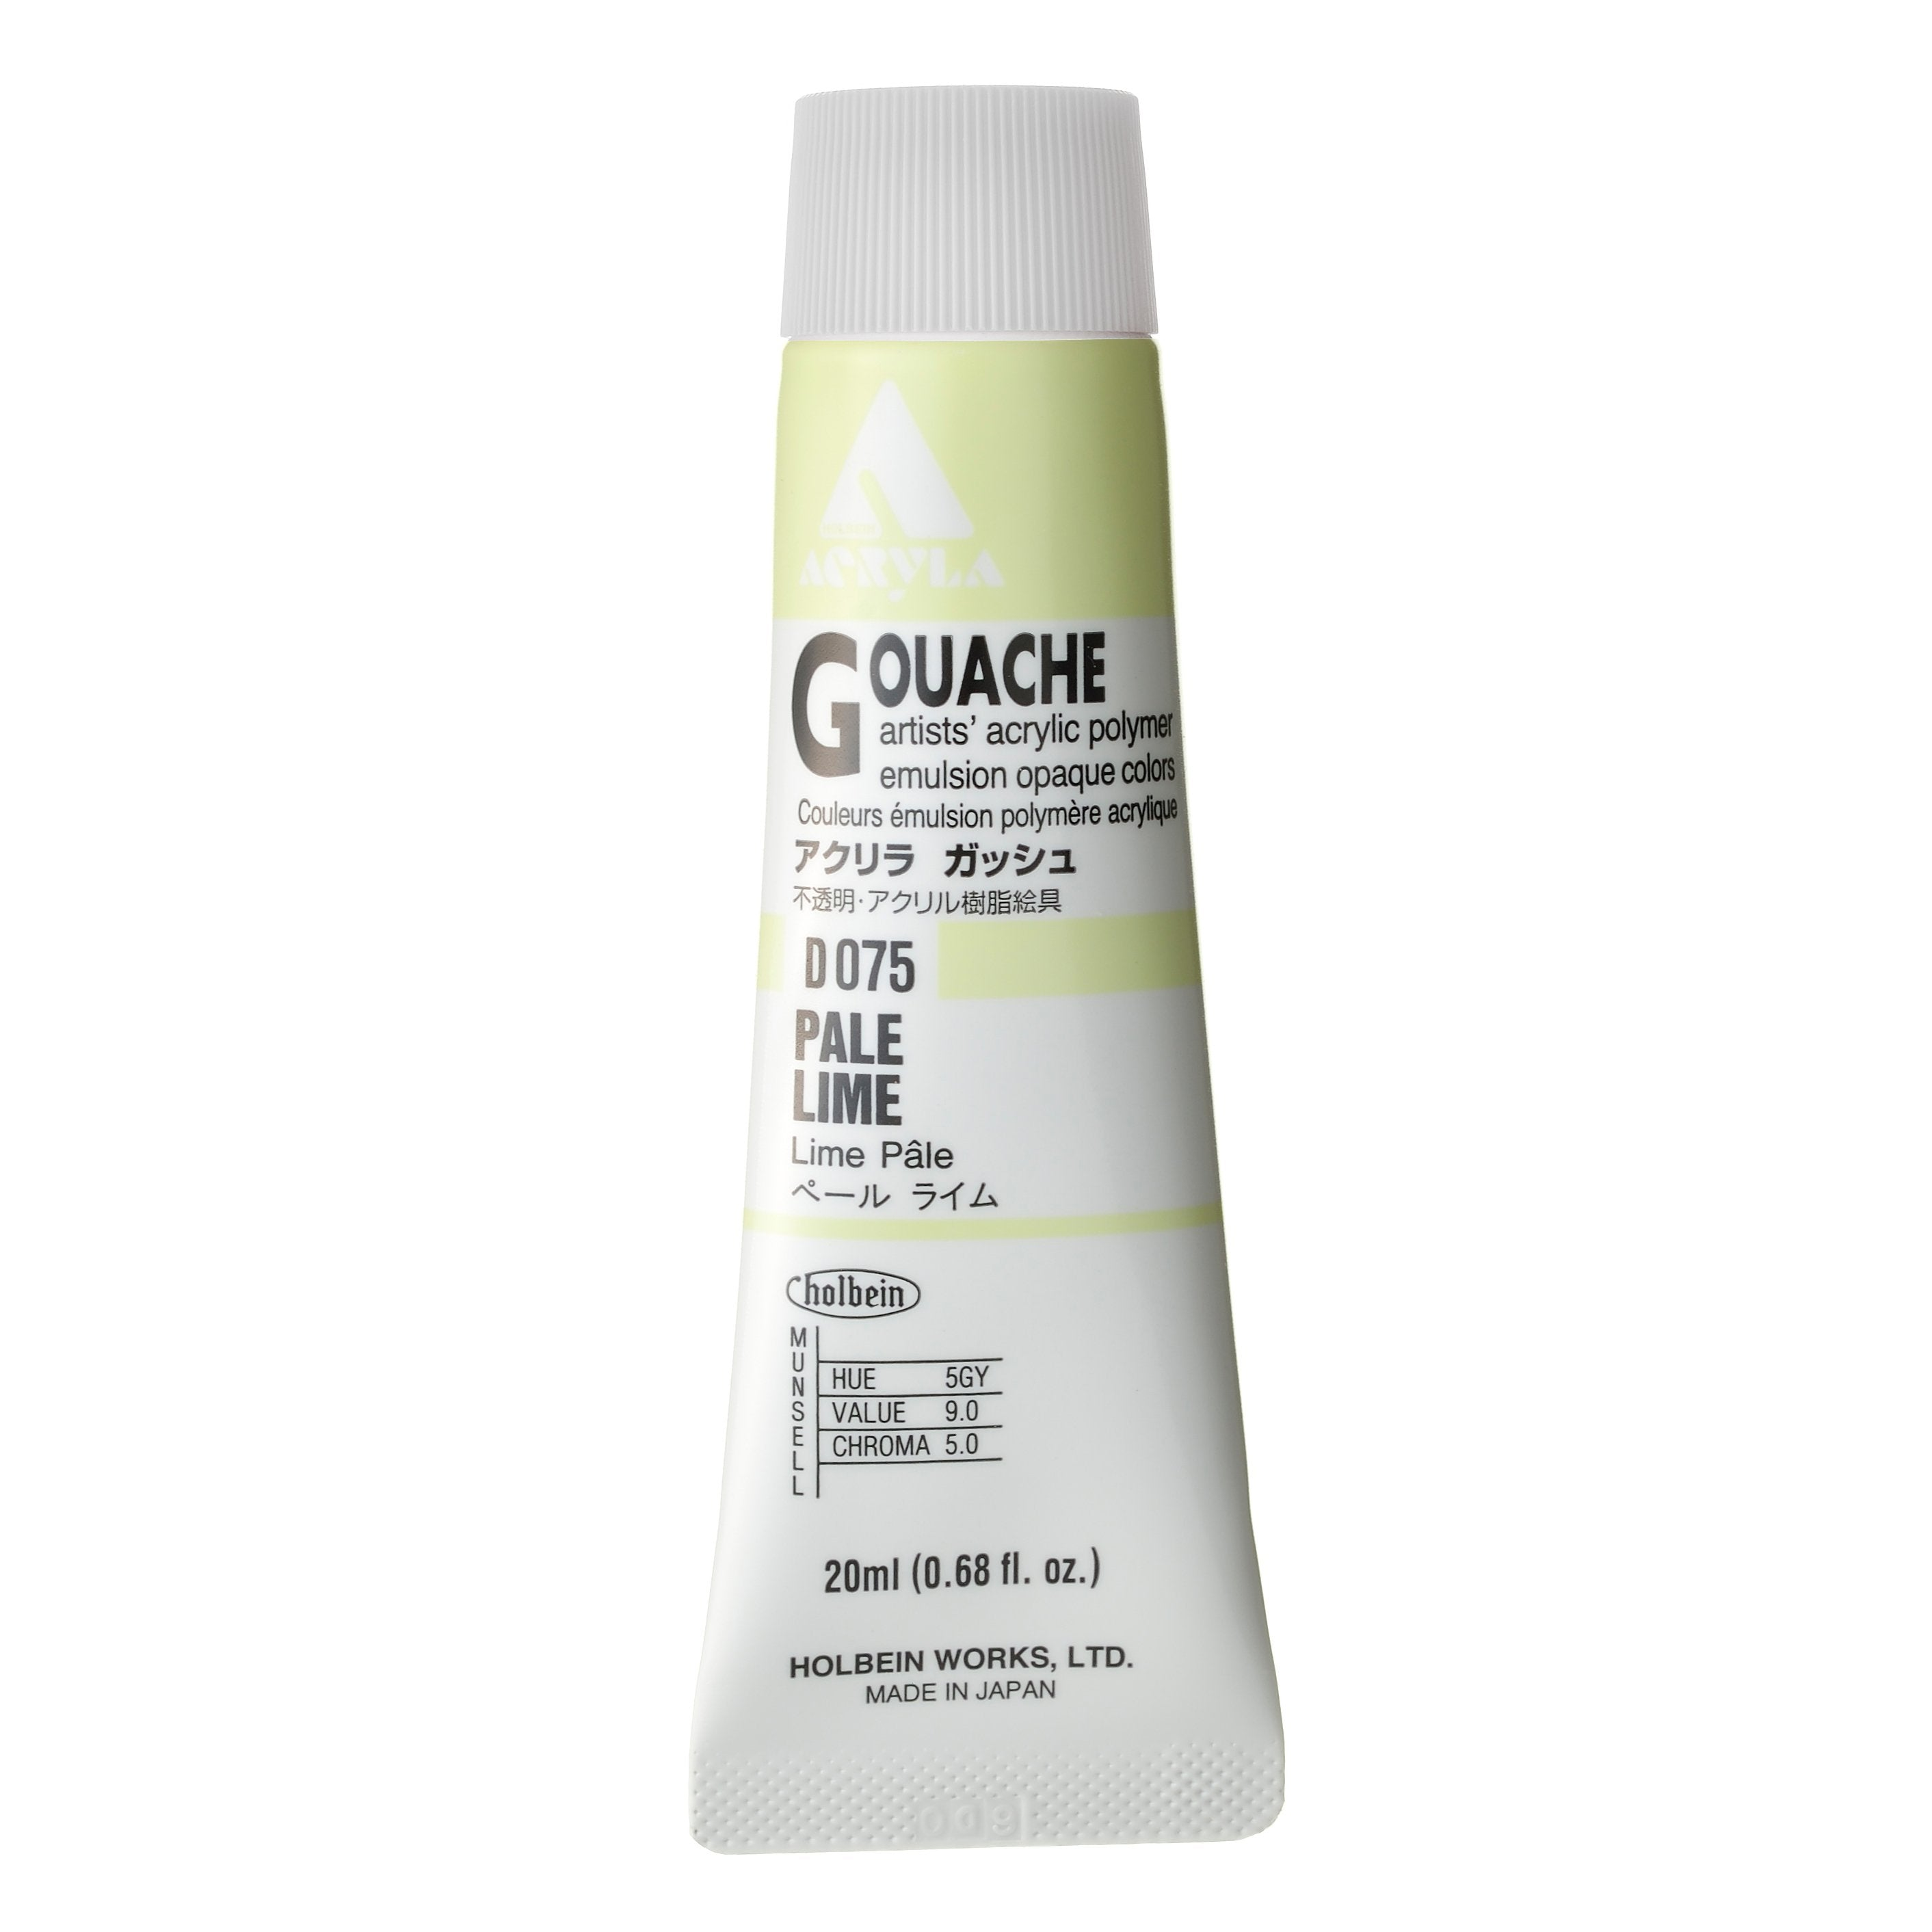 Holbein Acryla Gouache, 20ml, Pale Lime